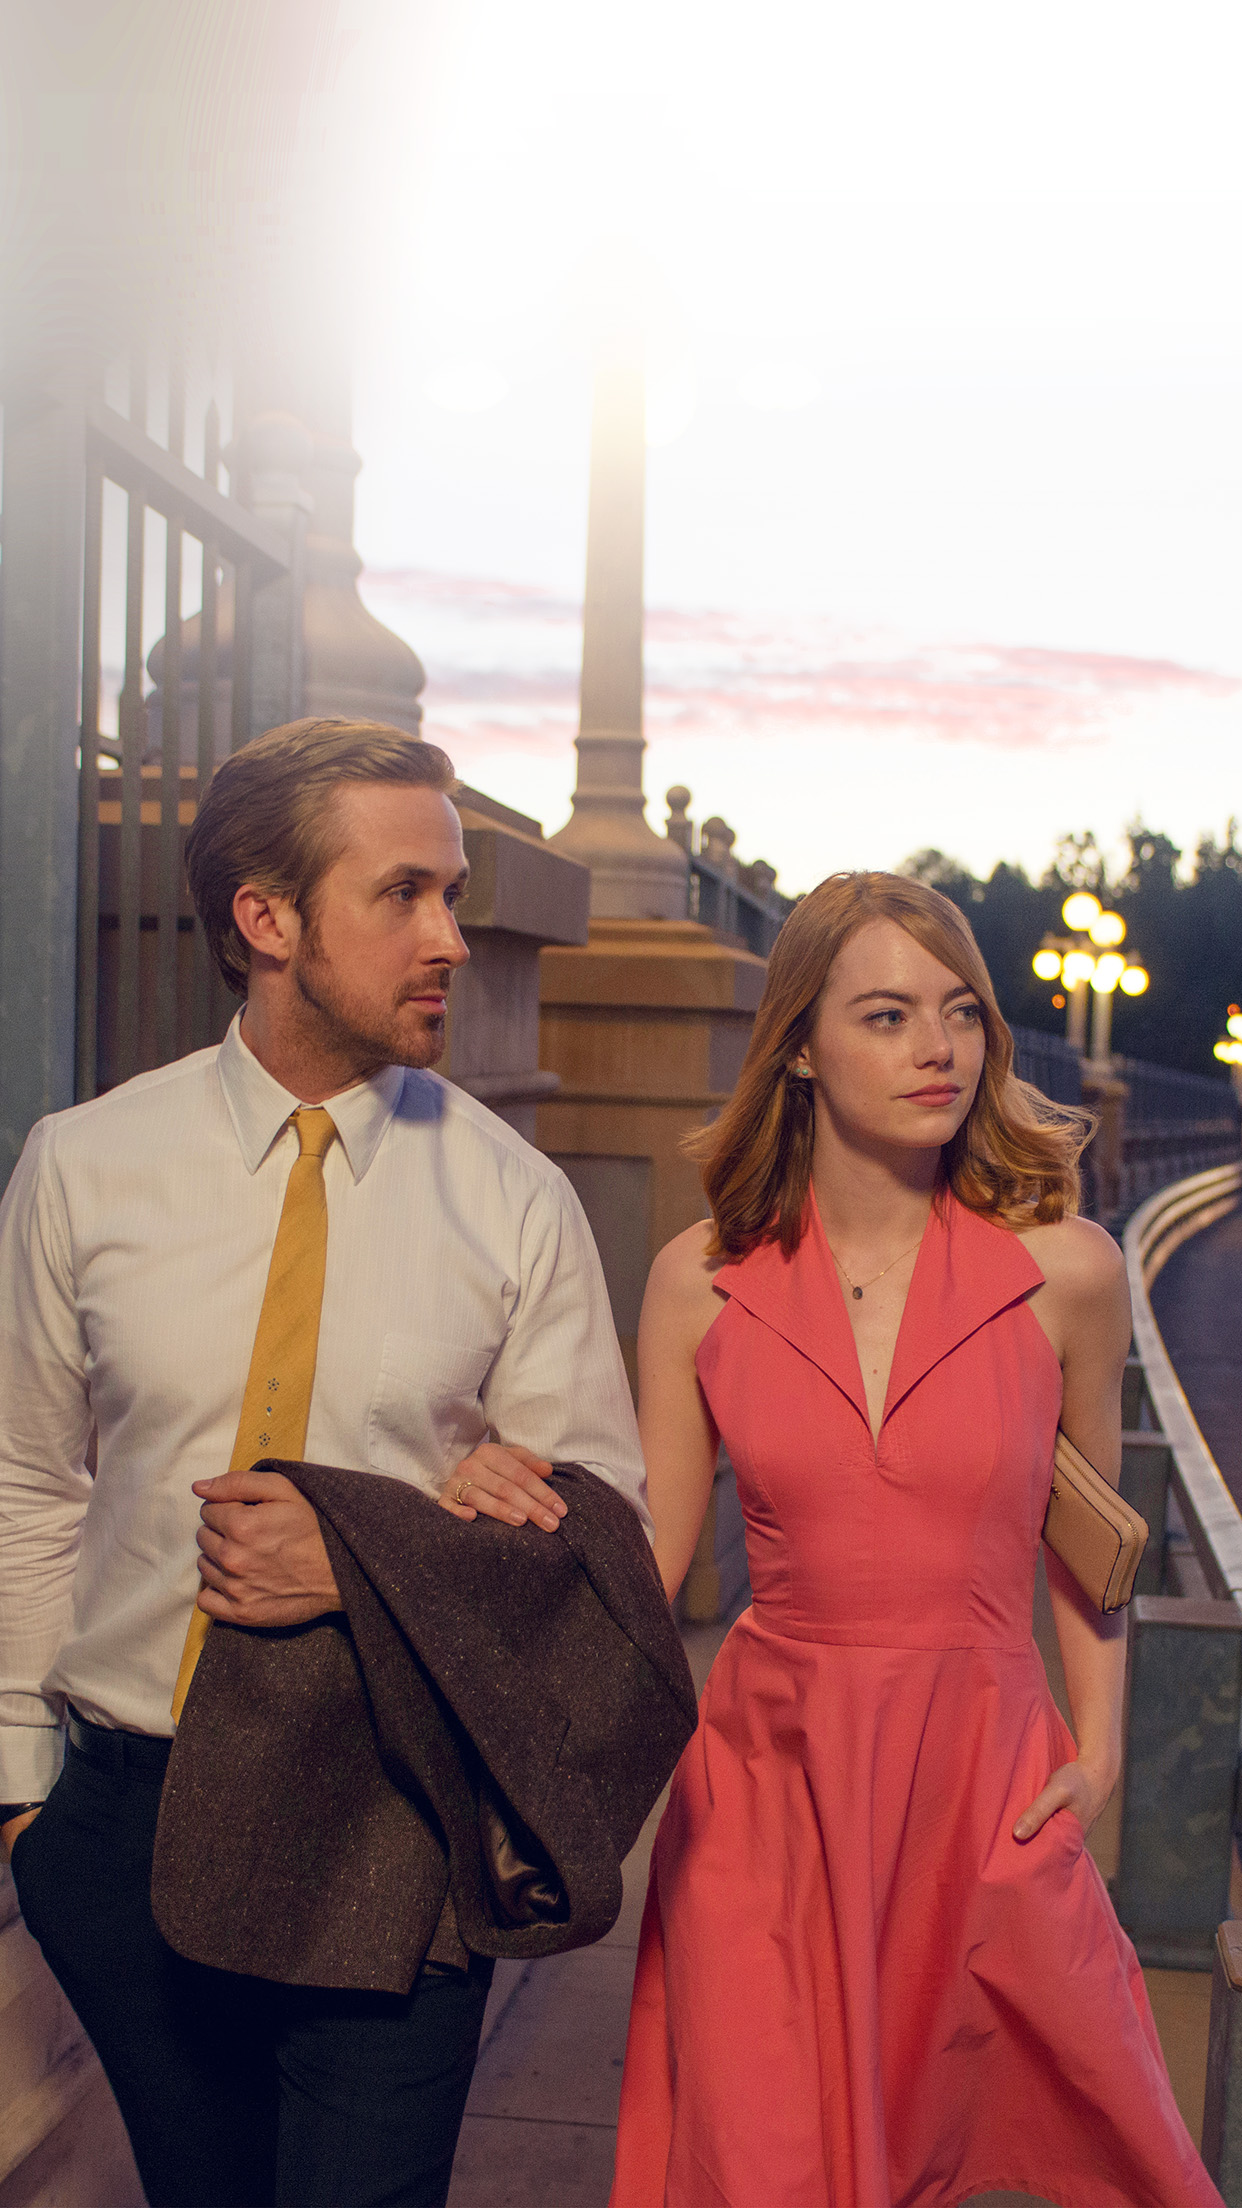 Simple Iphone X Wallpaper Hl40 Lalaland Ryan Gosling Emma Stone Red Film Wallpaper